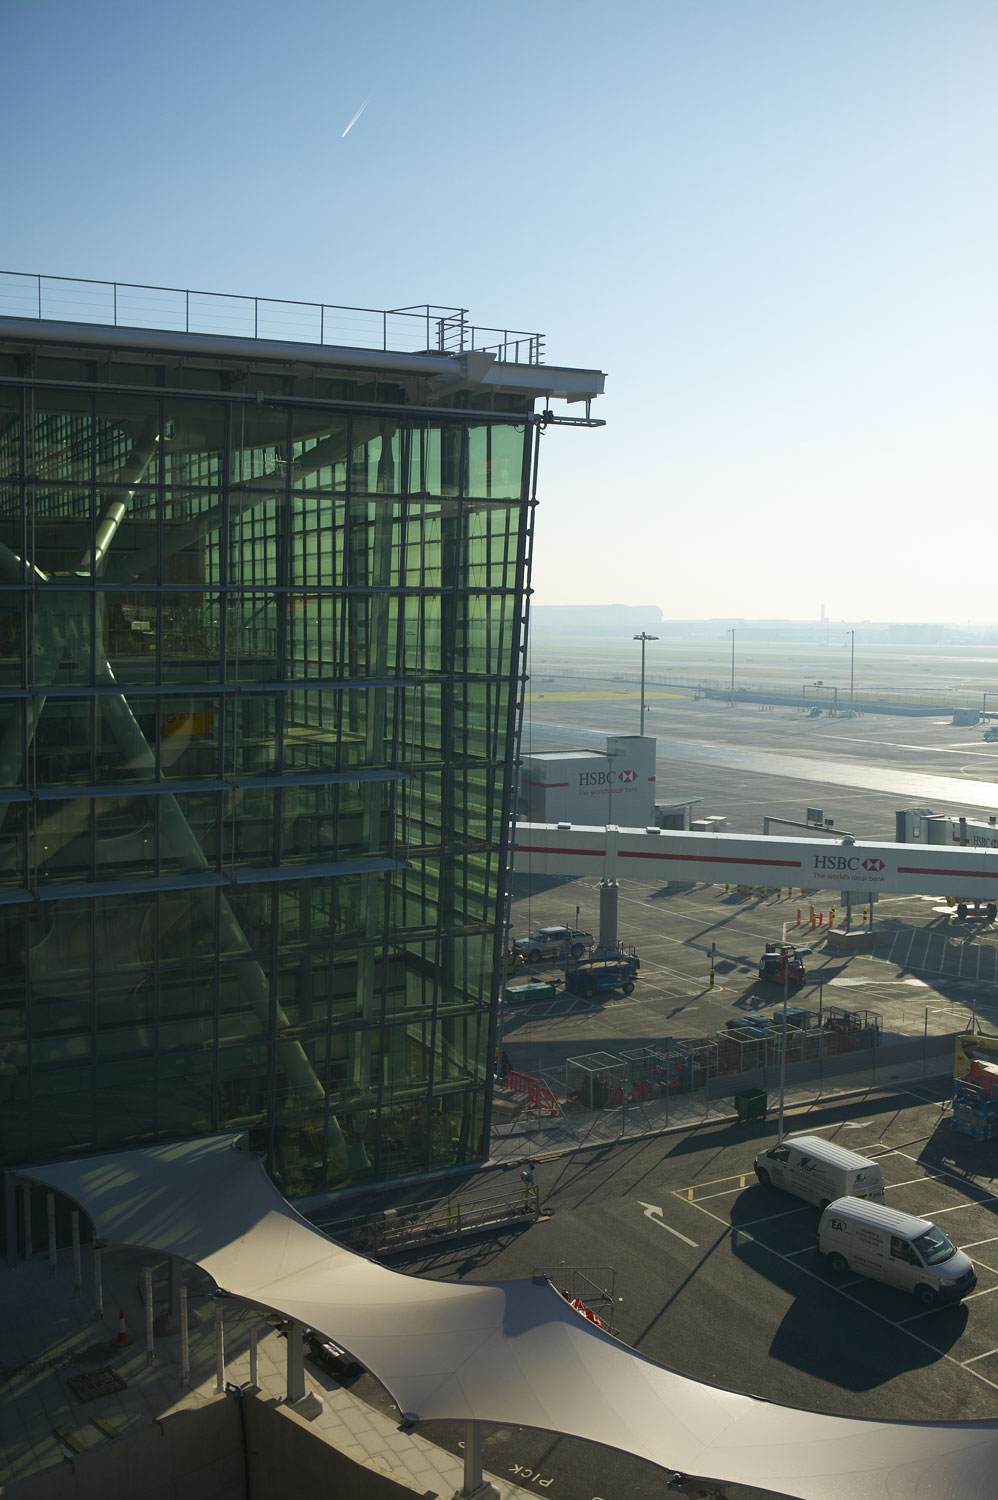 Heathrow Airport Terminal 5 glazed facade and apron at dawn | Architectural Photographer